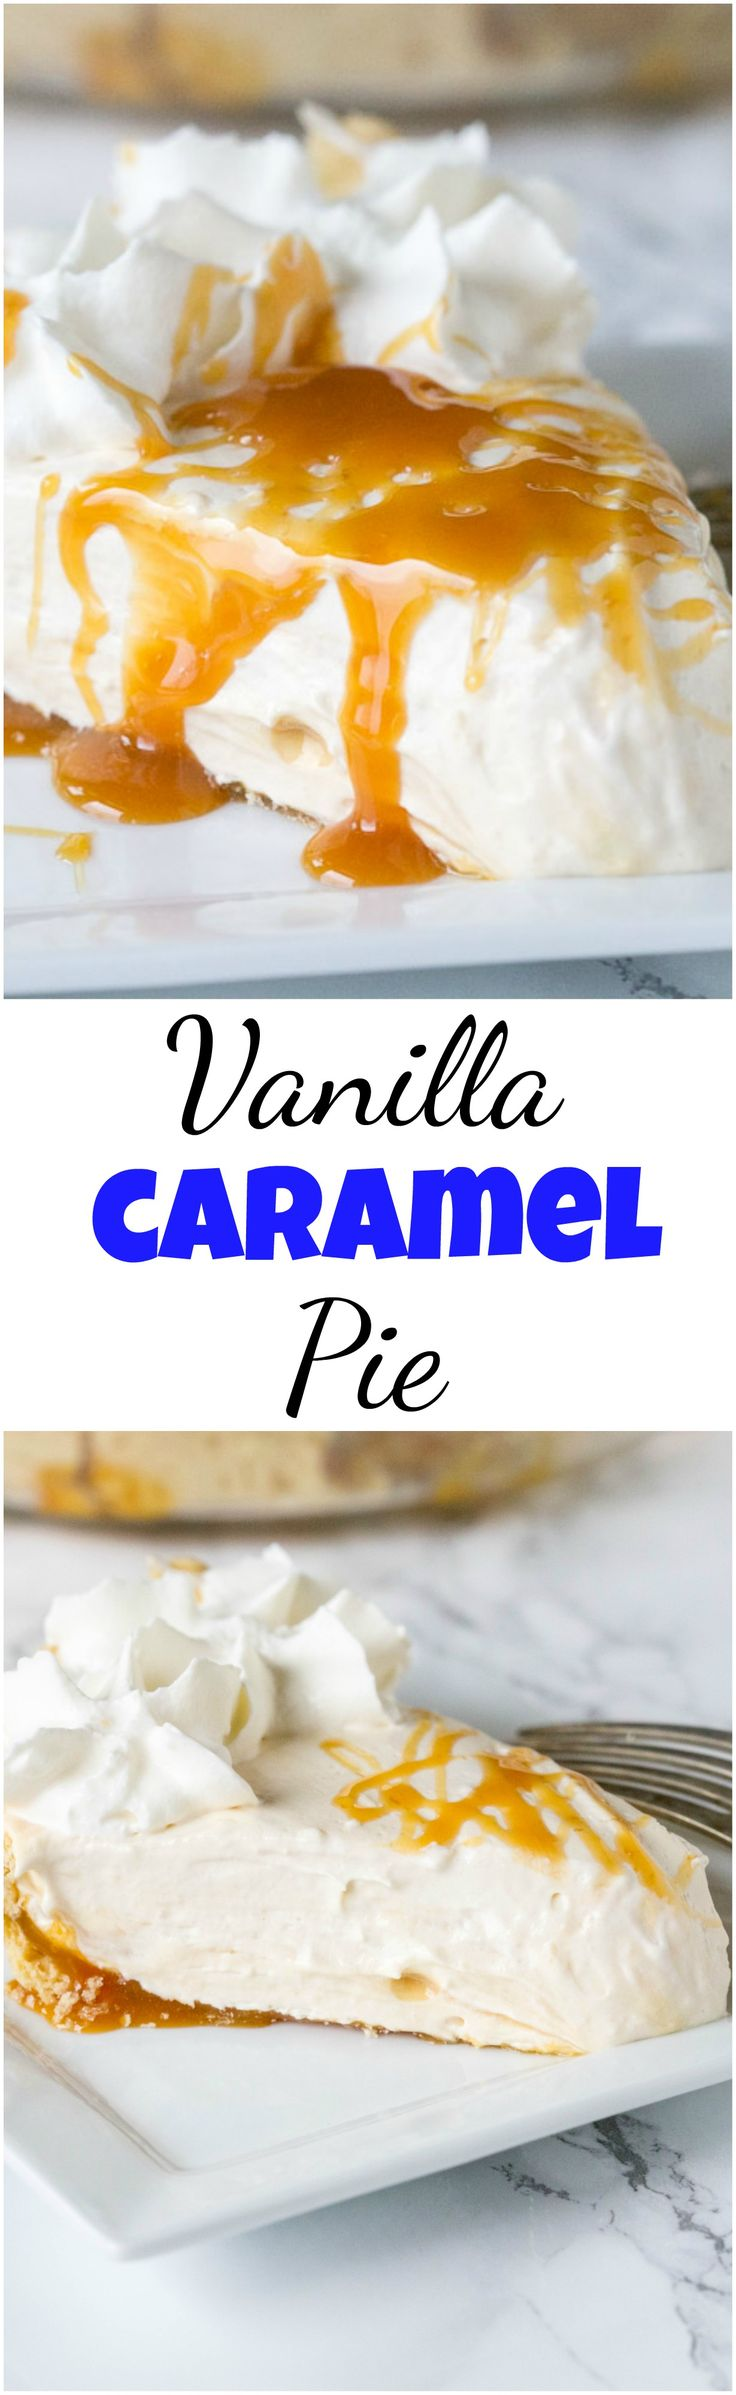 Vanilla Caramel Pie – An easy vanilla cream pie with lots of caramel mixed in.  Topped with homemade whipped cream and a caramel drizzle. Great for holiday entertaining! #pie #caramel #vanillacreampie #dessert #baking #holidaydessert